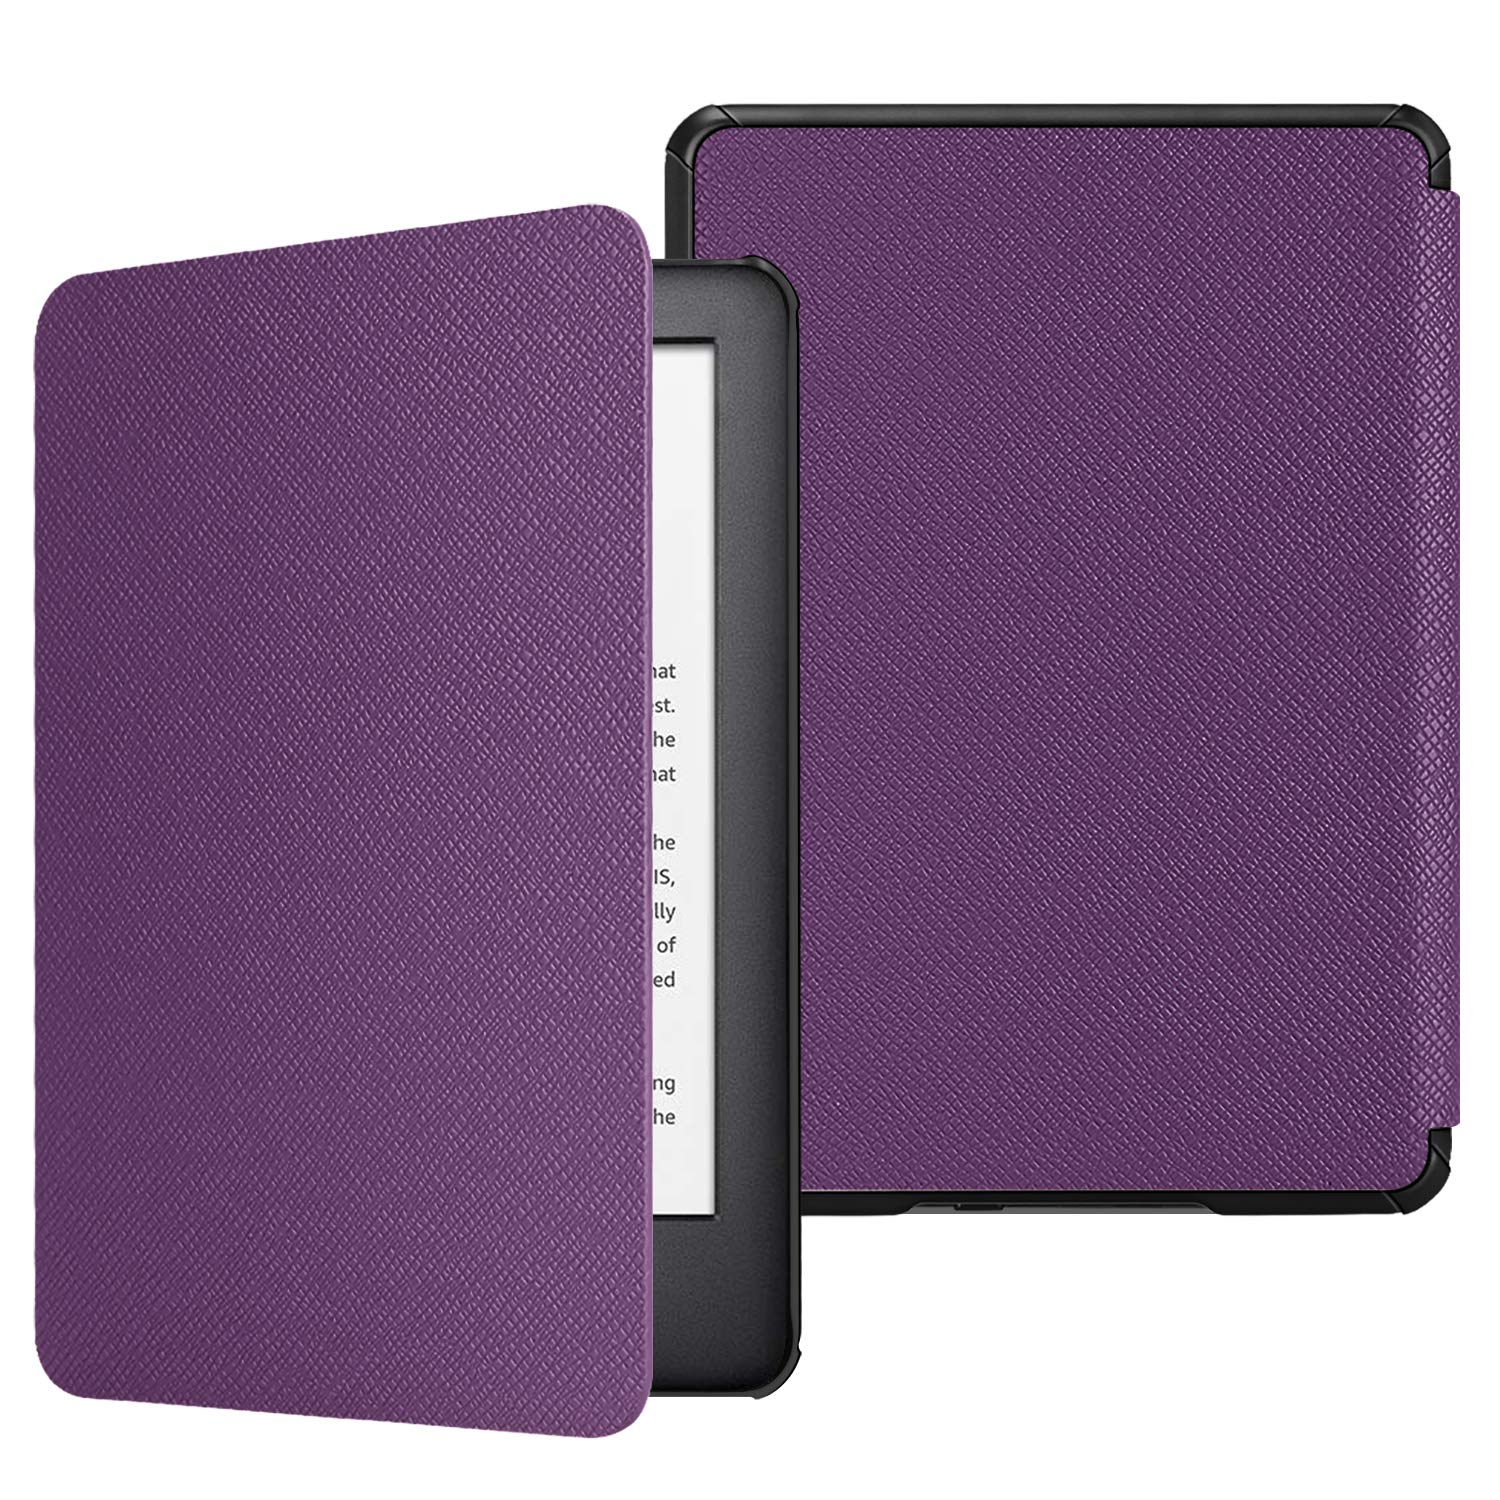 Fintie Slimshell Case for All-New Kindle (10th Generation, 2019 Release) - Lightweight Premium PU Leather Protective Cover with Auto Sleep/Wake (NOT Fit Kindle Paperwhite or Kindle 8th Gen), Violet